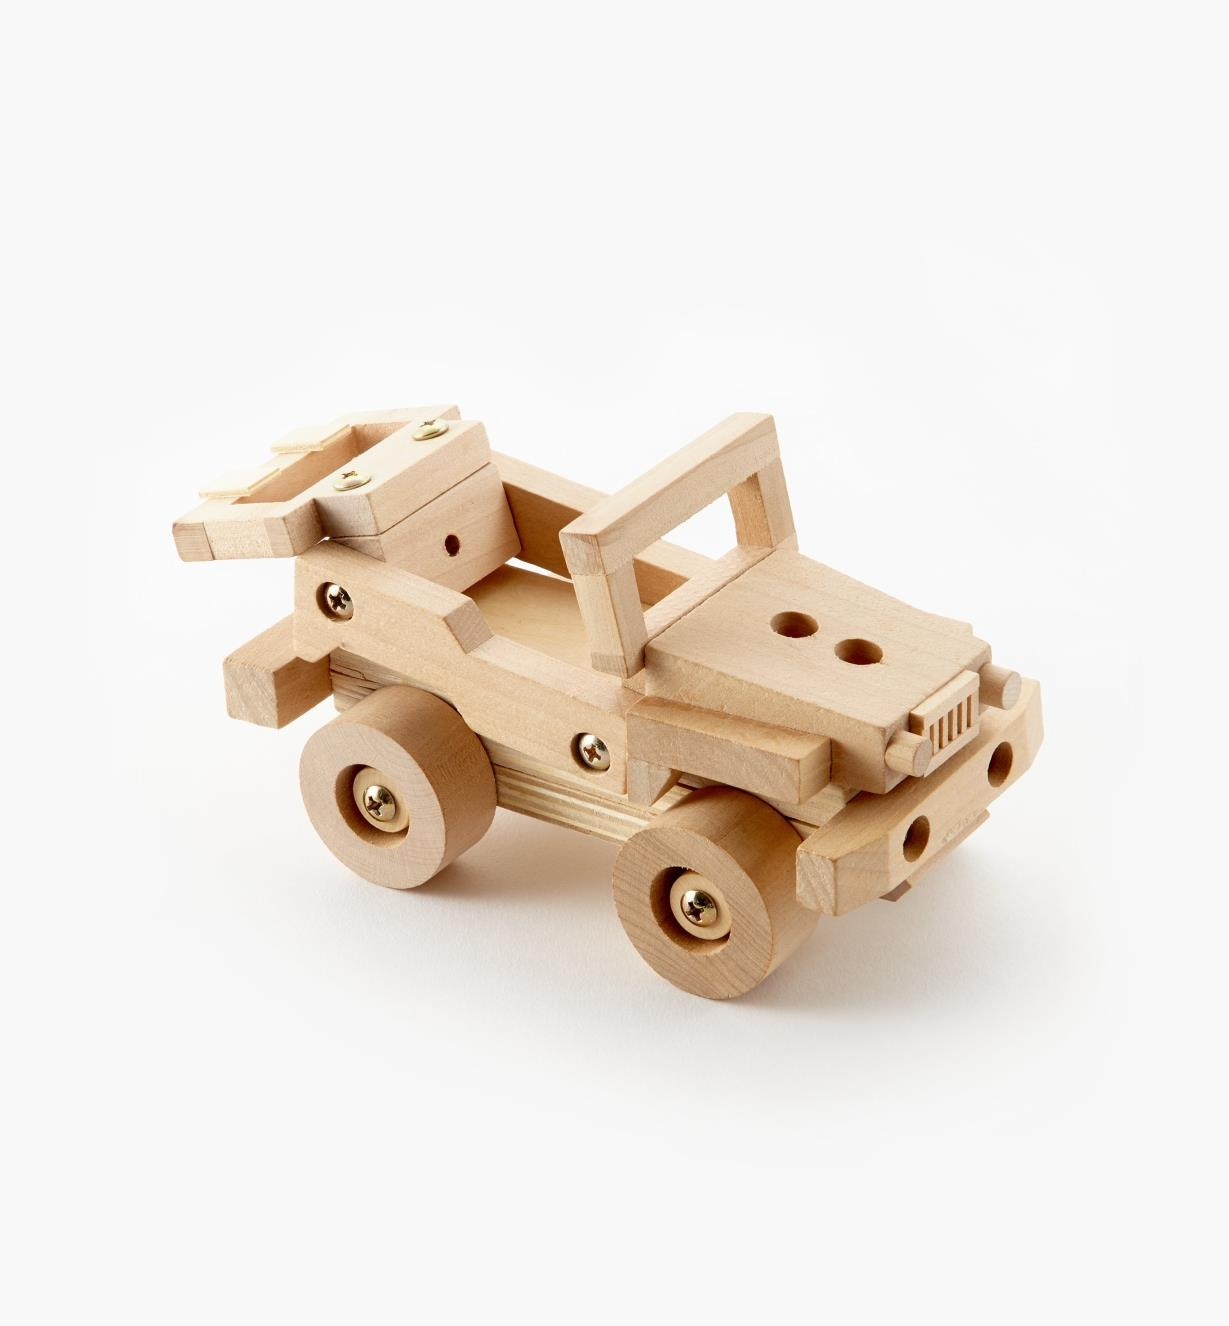 09A0538 - Off-Road Vehicle Easy-To-Build Wooden Toy Kit